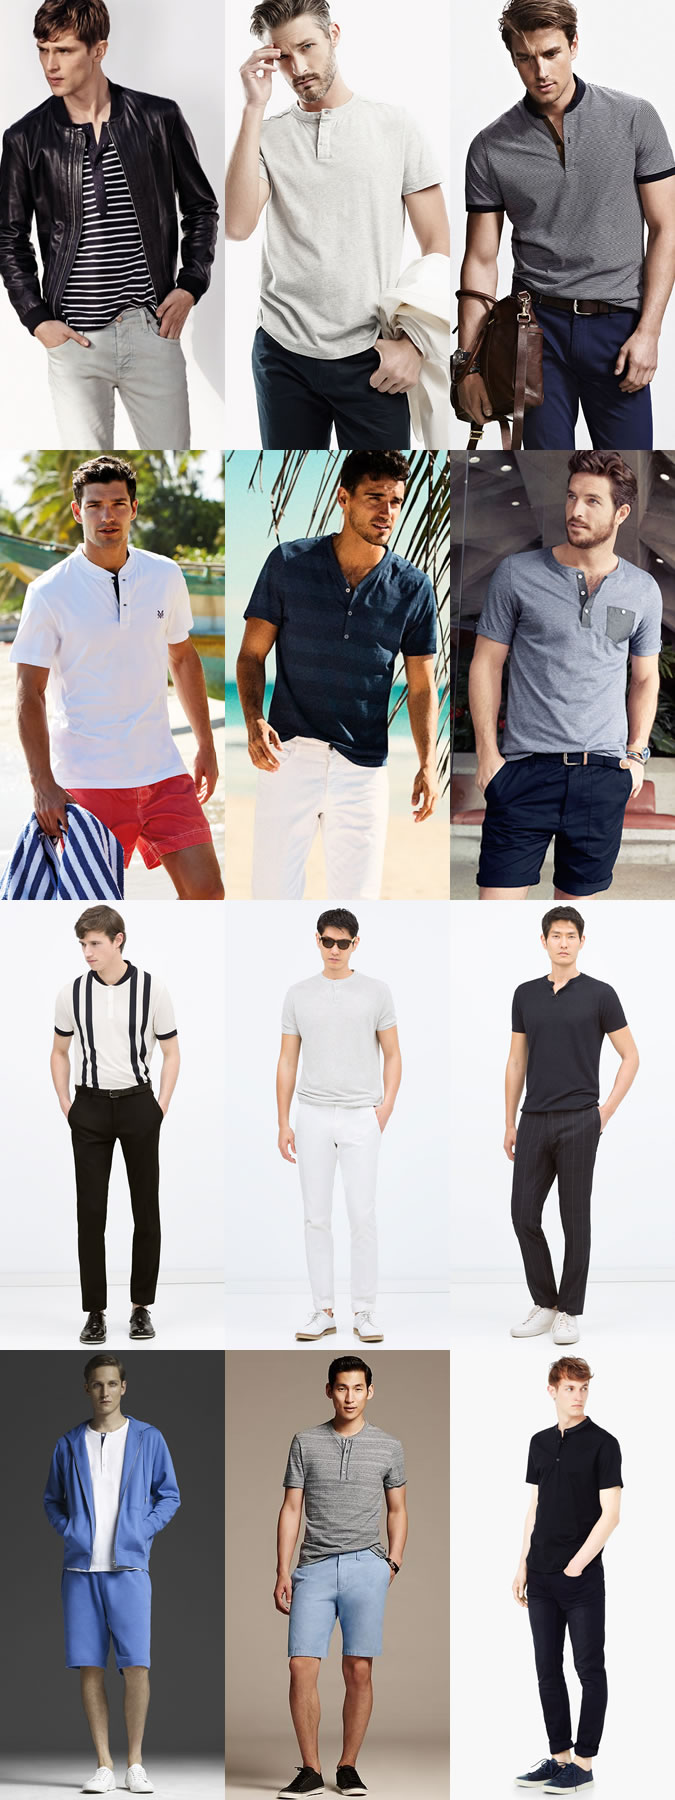 short-sleeved shirts